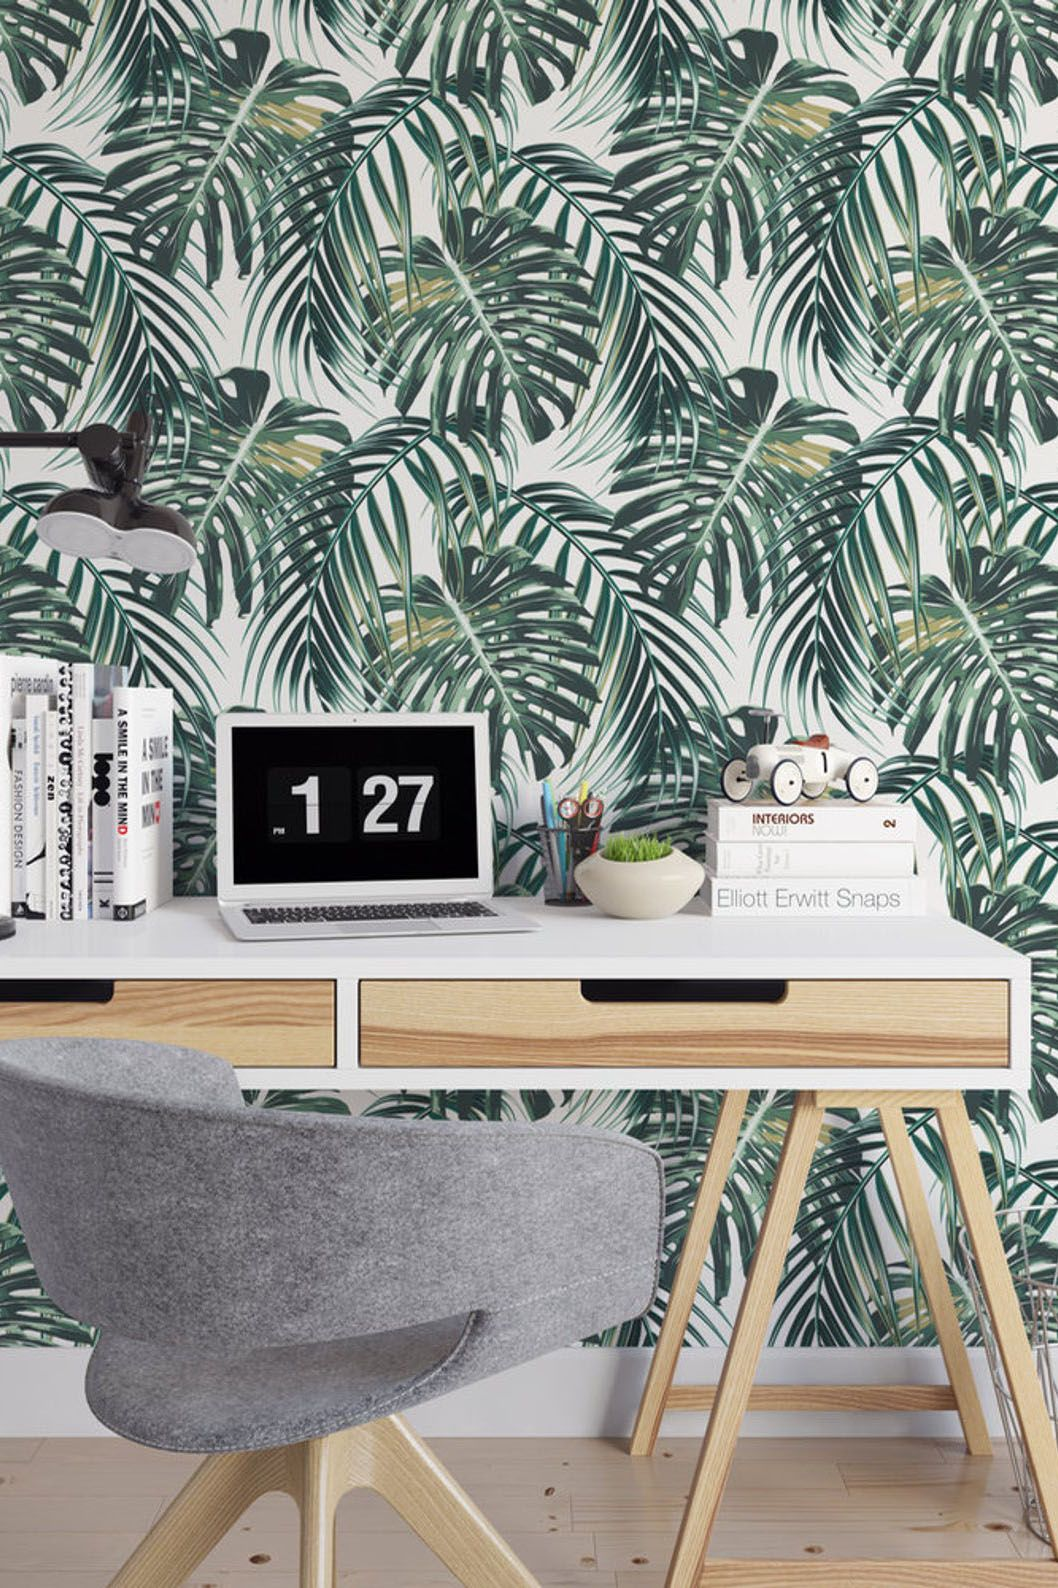 Botanical Removable Wallpaper B134 27 Etsy Removable Wallpaper Decor Peel And Stick Wallpaper